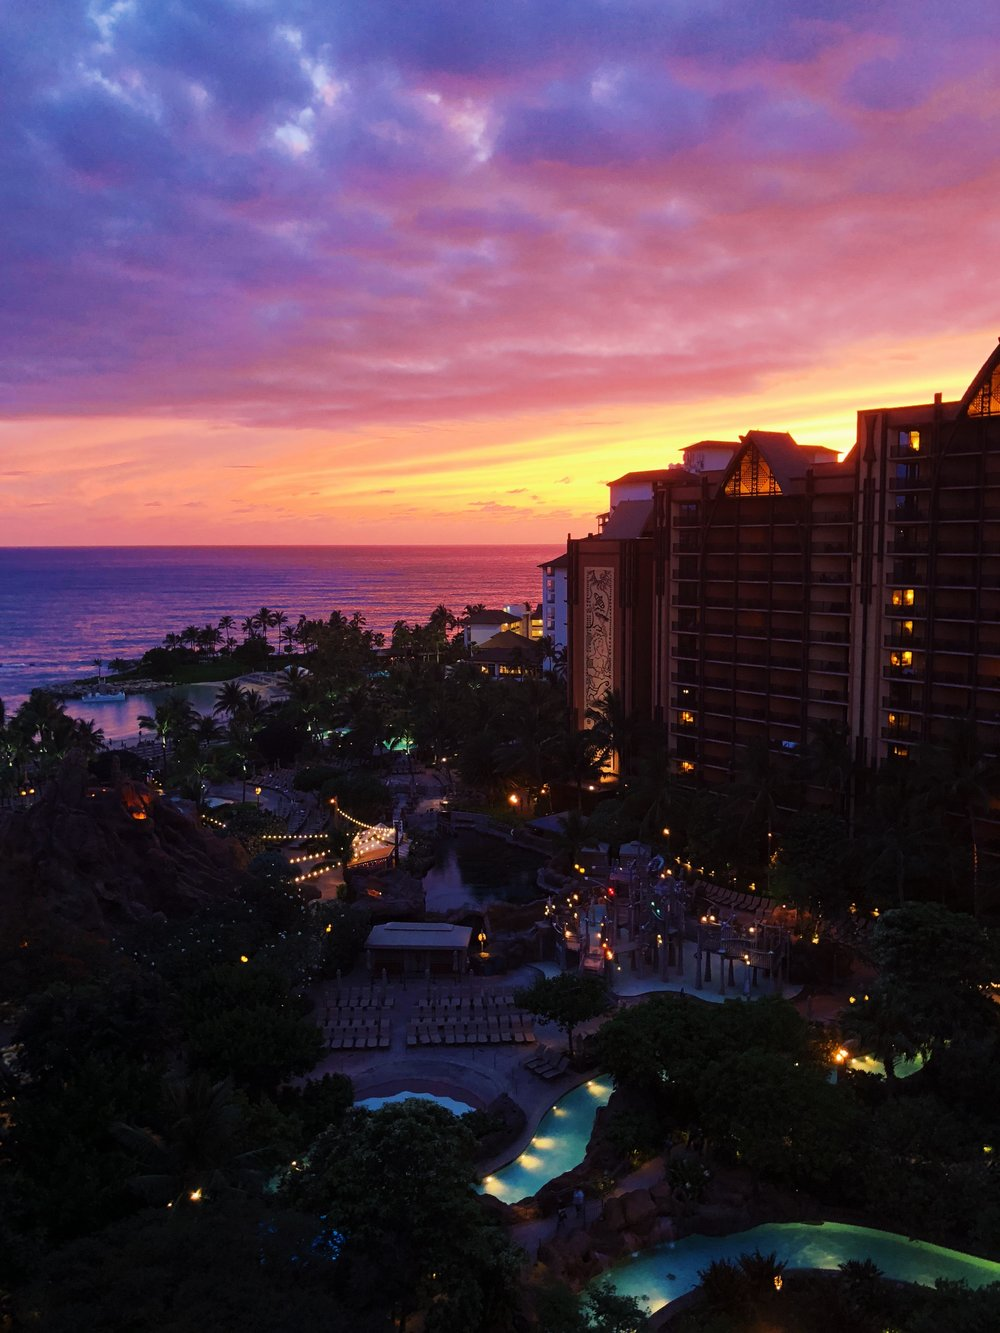 Sunset over Aulani.